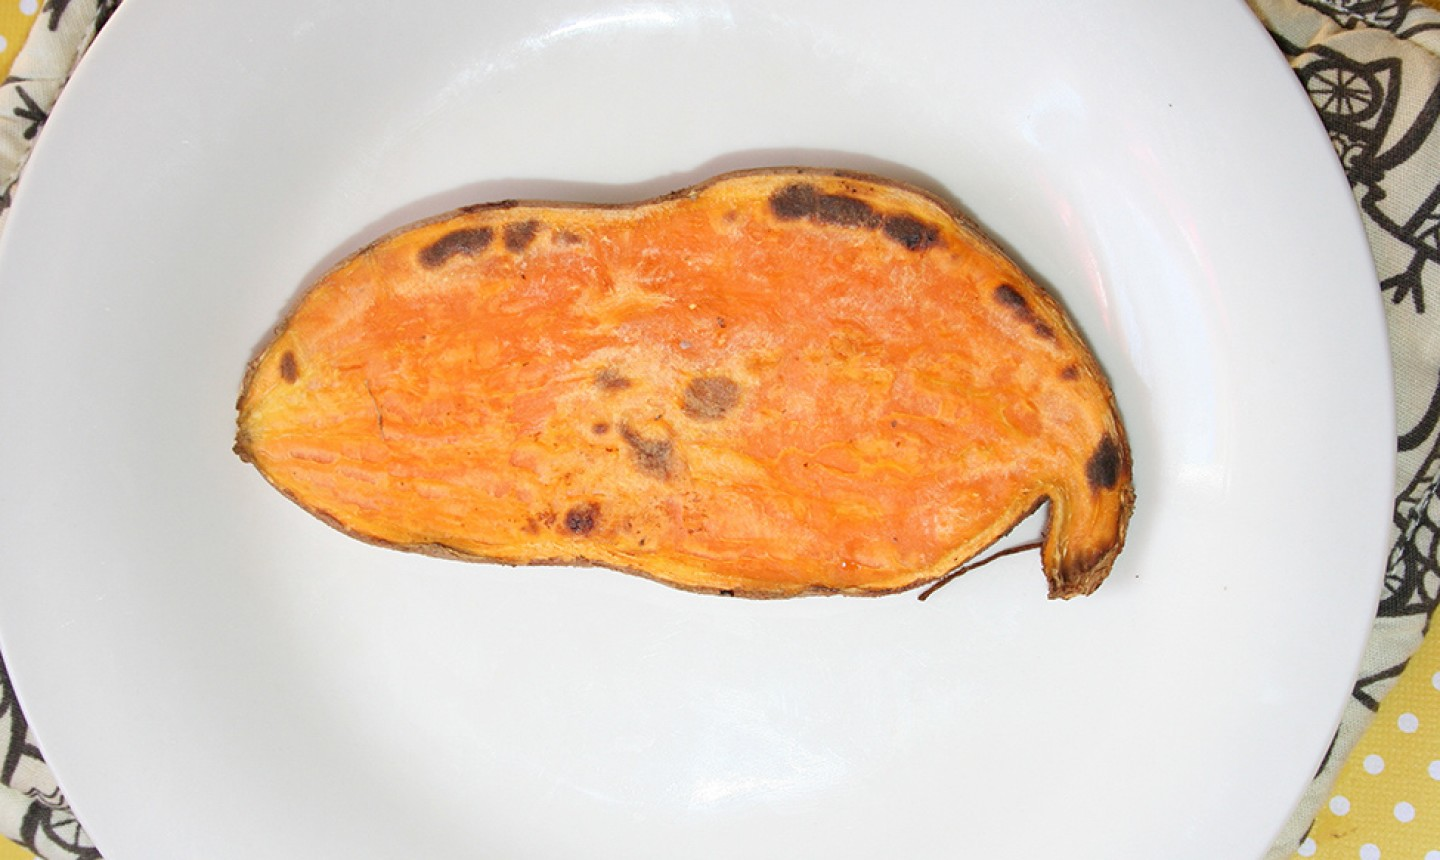 toasted sweet potato slice